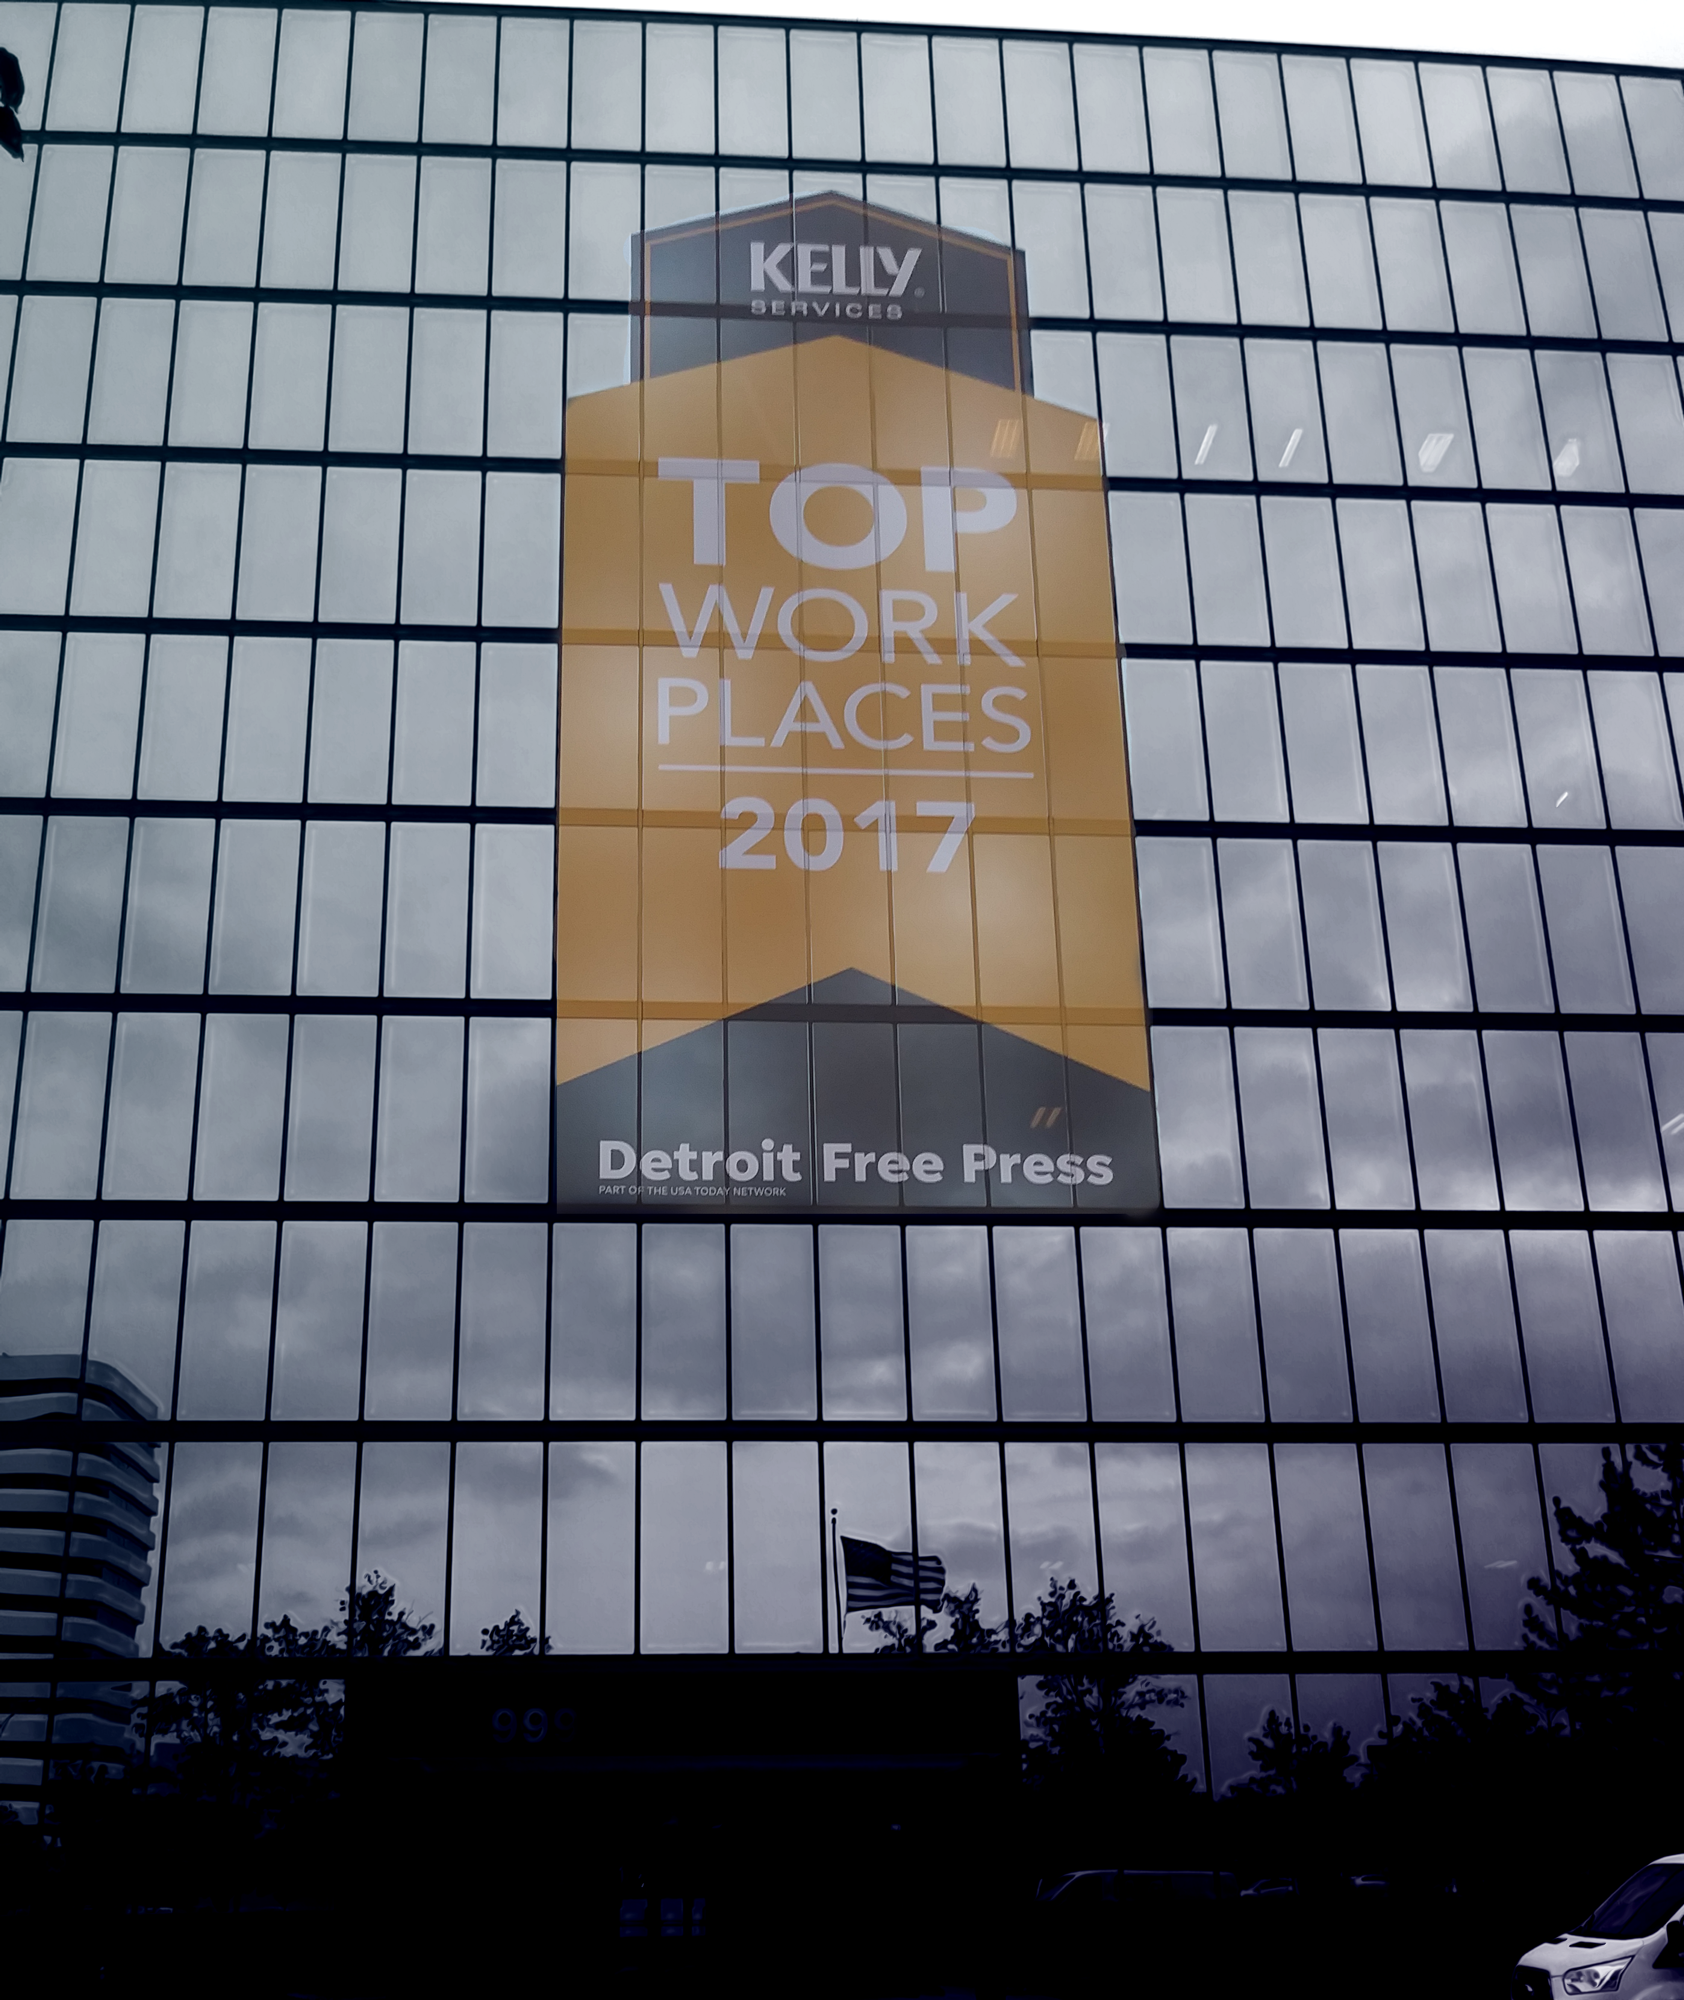 exterior of kelly services perforated window graphic 60' tall